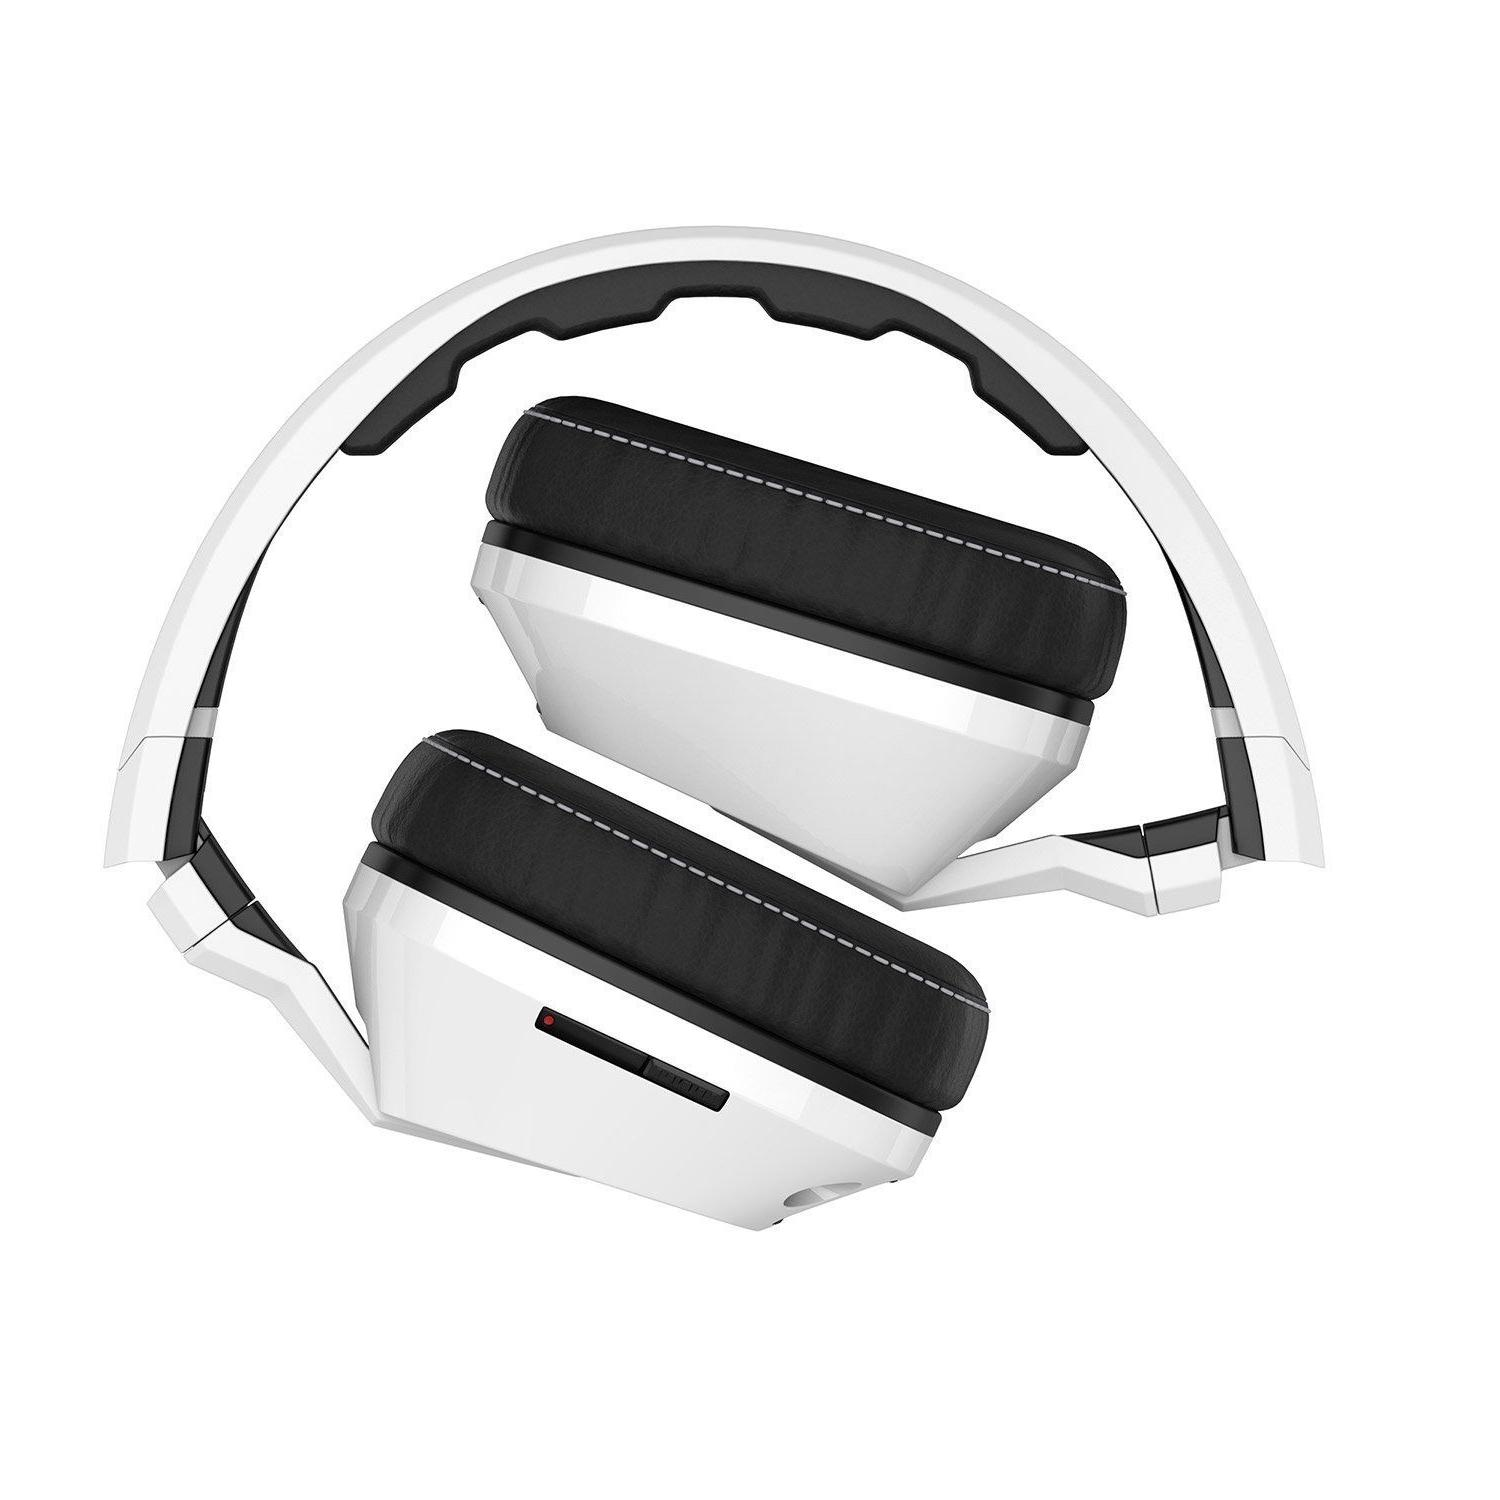 New Skullcandy Crusher with Built-in Mic